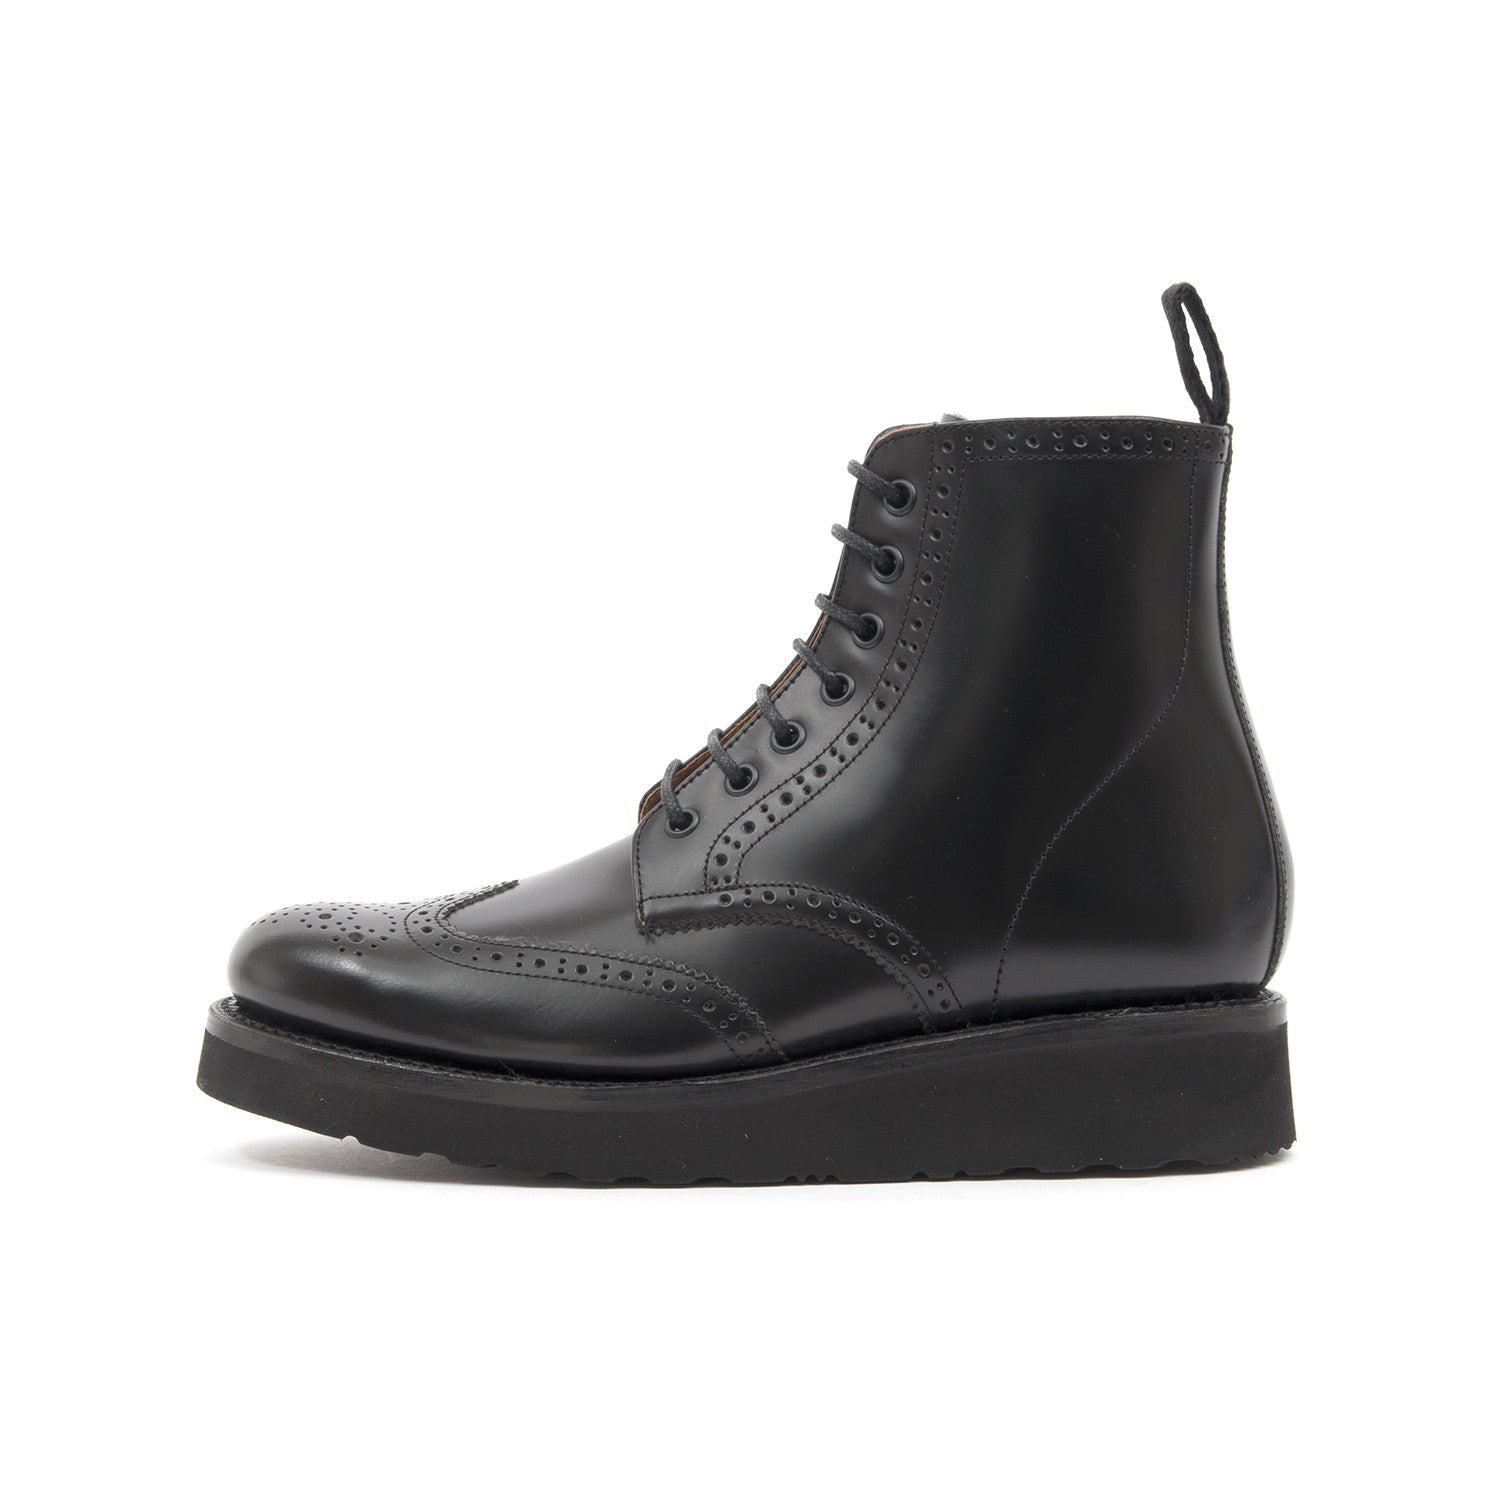 bc720f7b37 Grenson 'Emma' Brogue Boot Black – Concrete